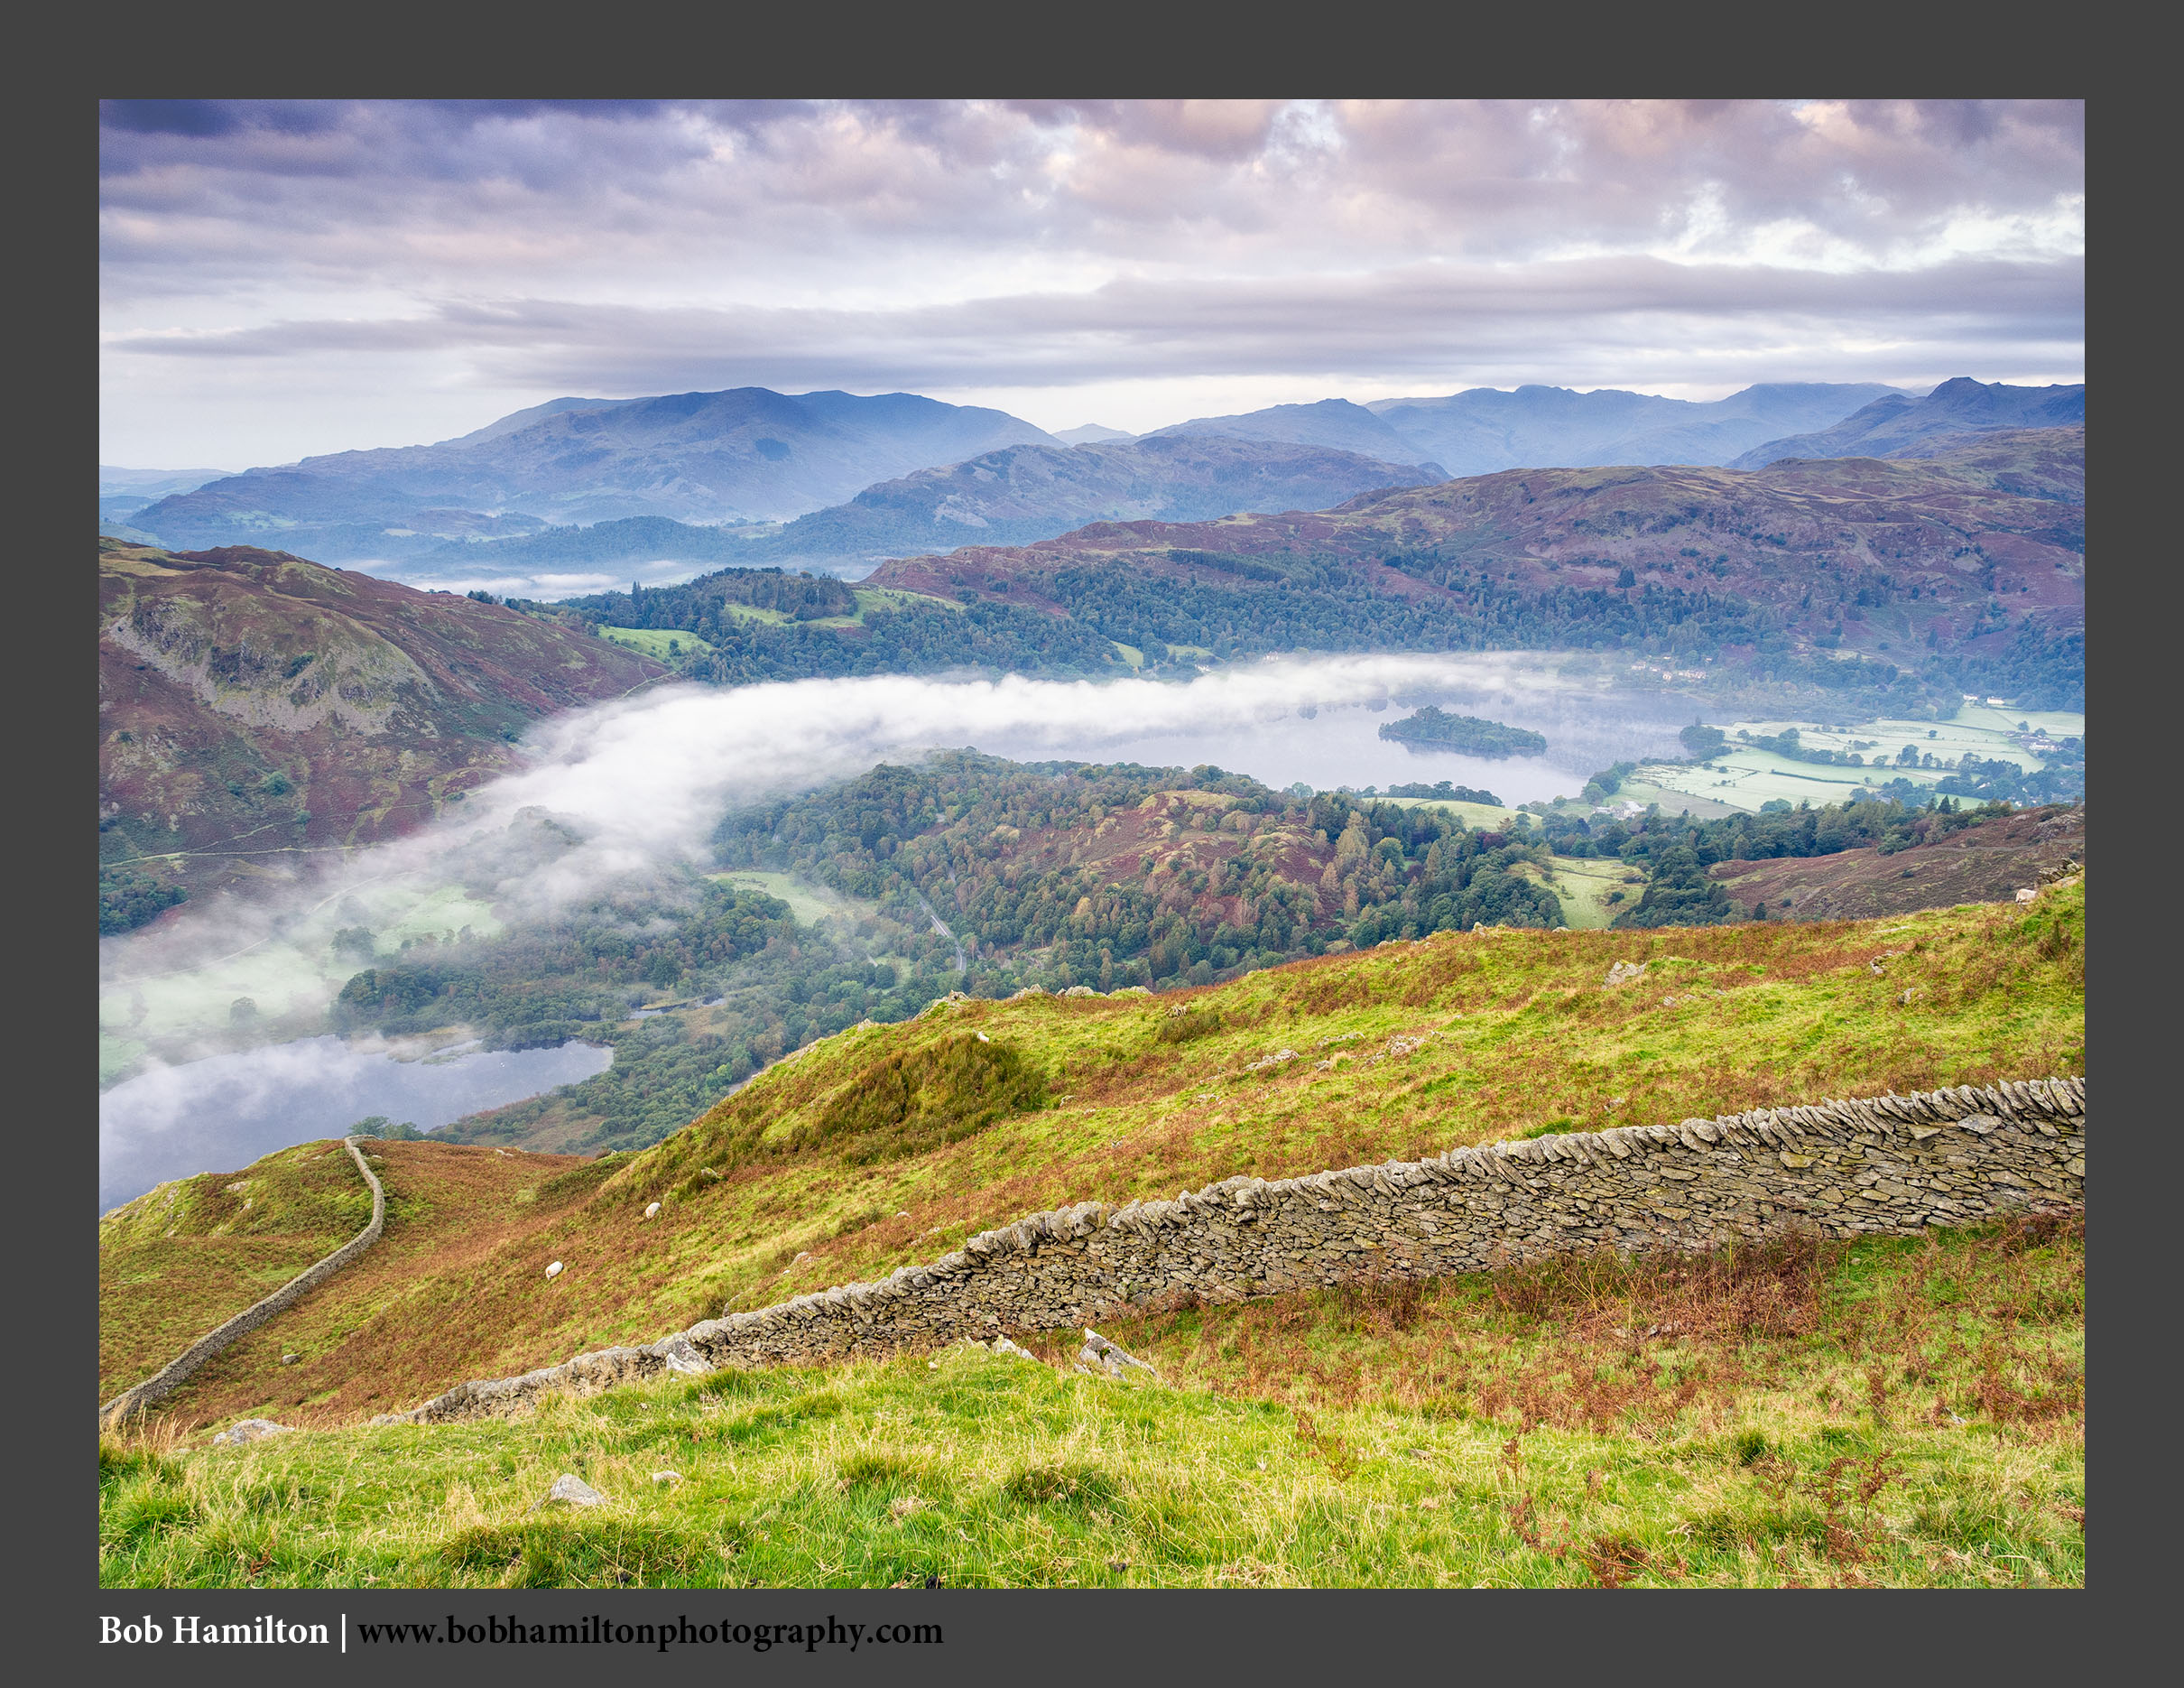 O125681 Rydal Water Grasmere and the Coniston and Langdale Fells from Nab Scar